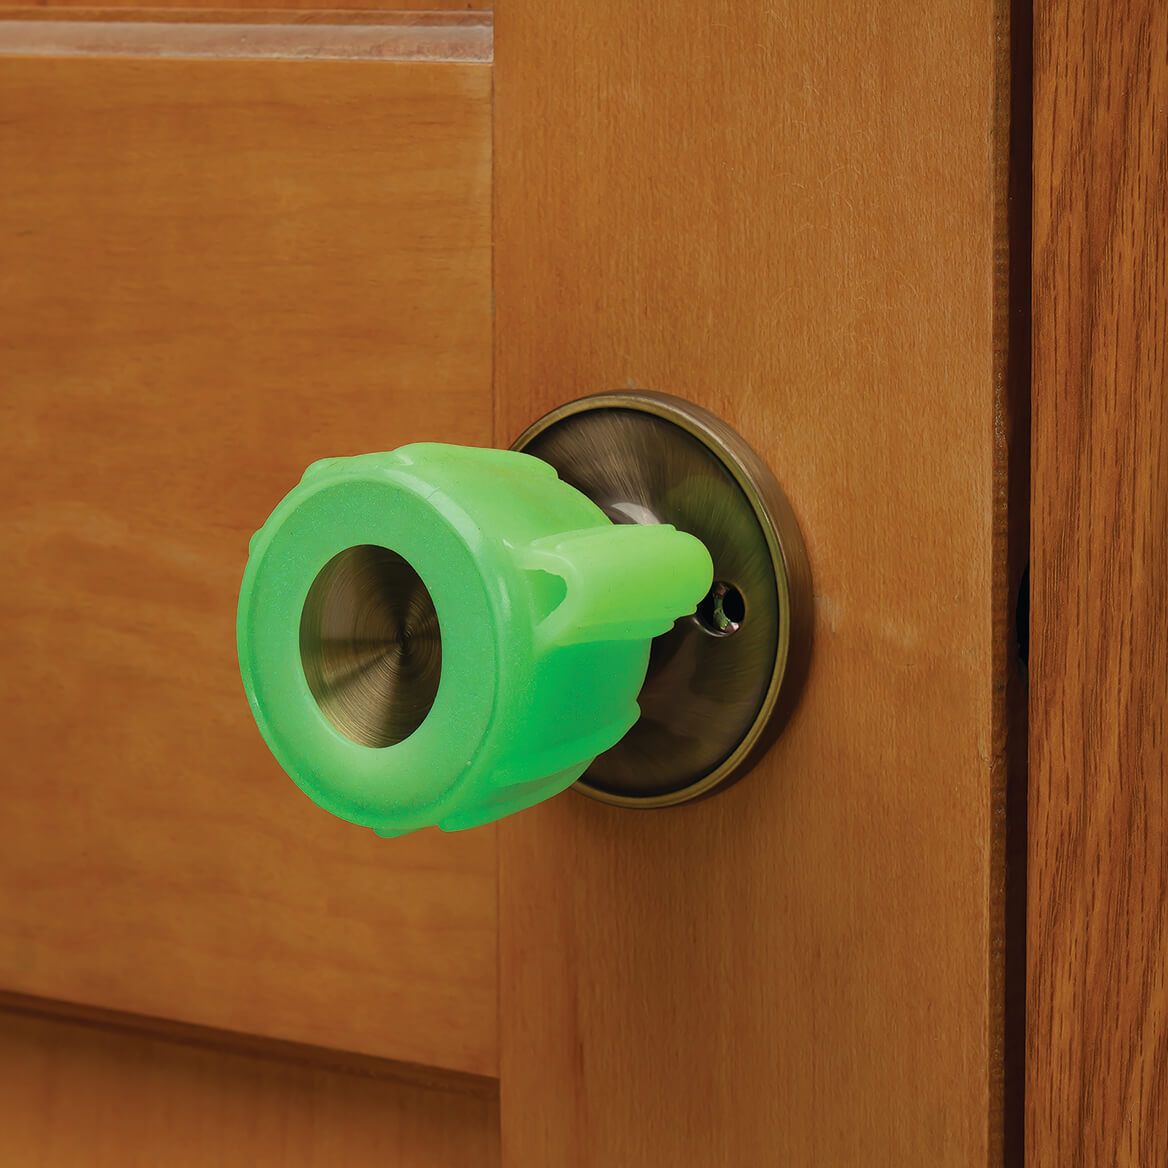 Glow-in-the-Dark Knob Grippers, Set of 2-369649